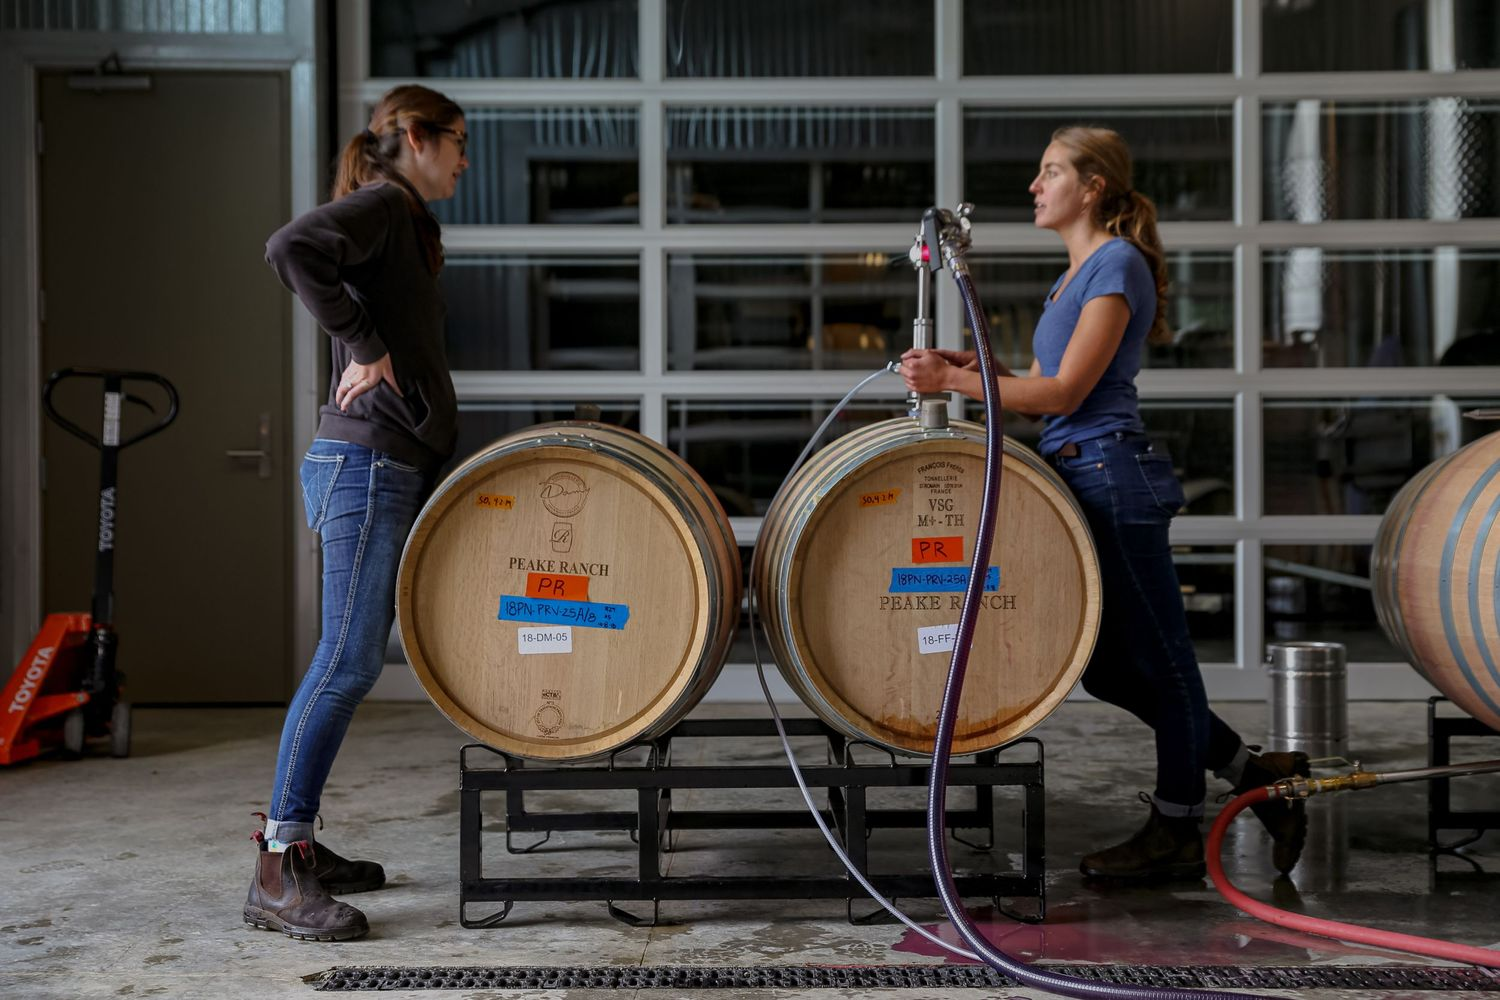 Women winemaker portraits.  Winemaker Wynne and Assistant Winemaker Lauren talking while racking wine at Peake Ranch.